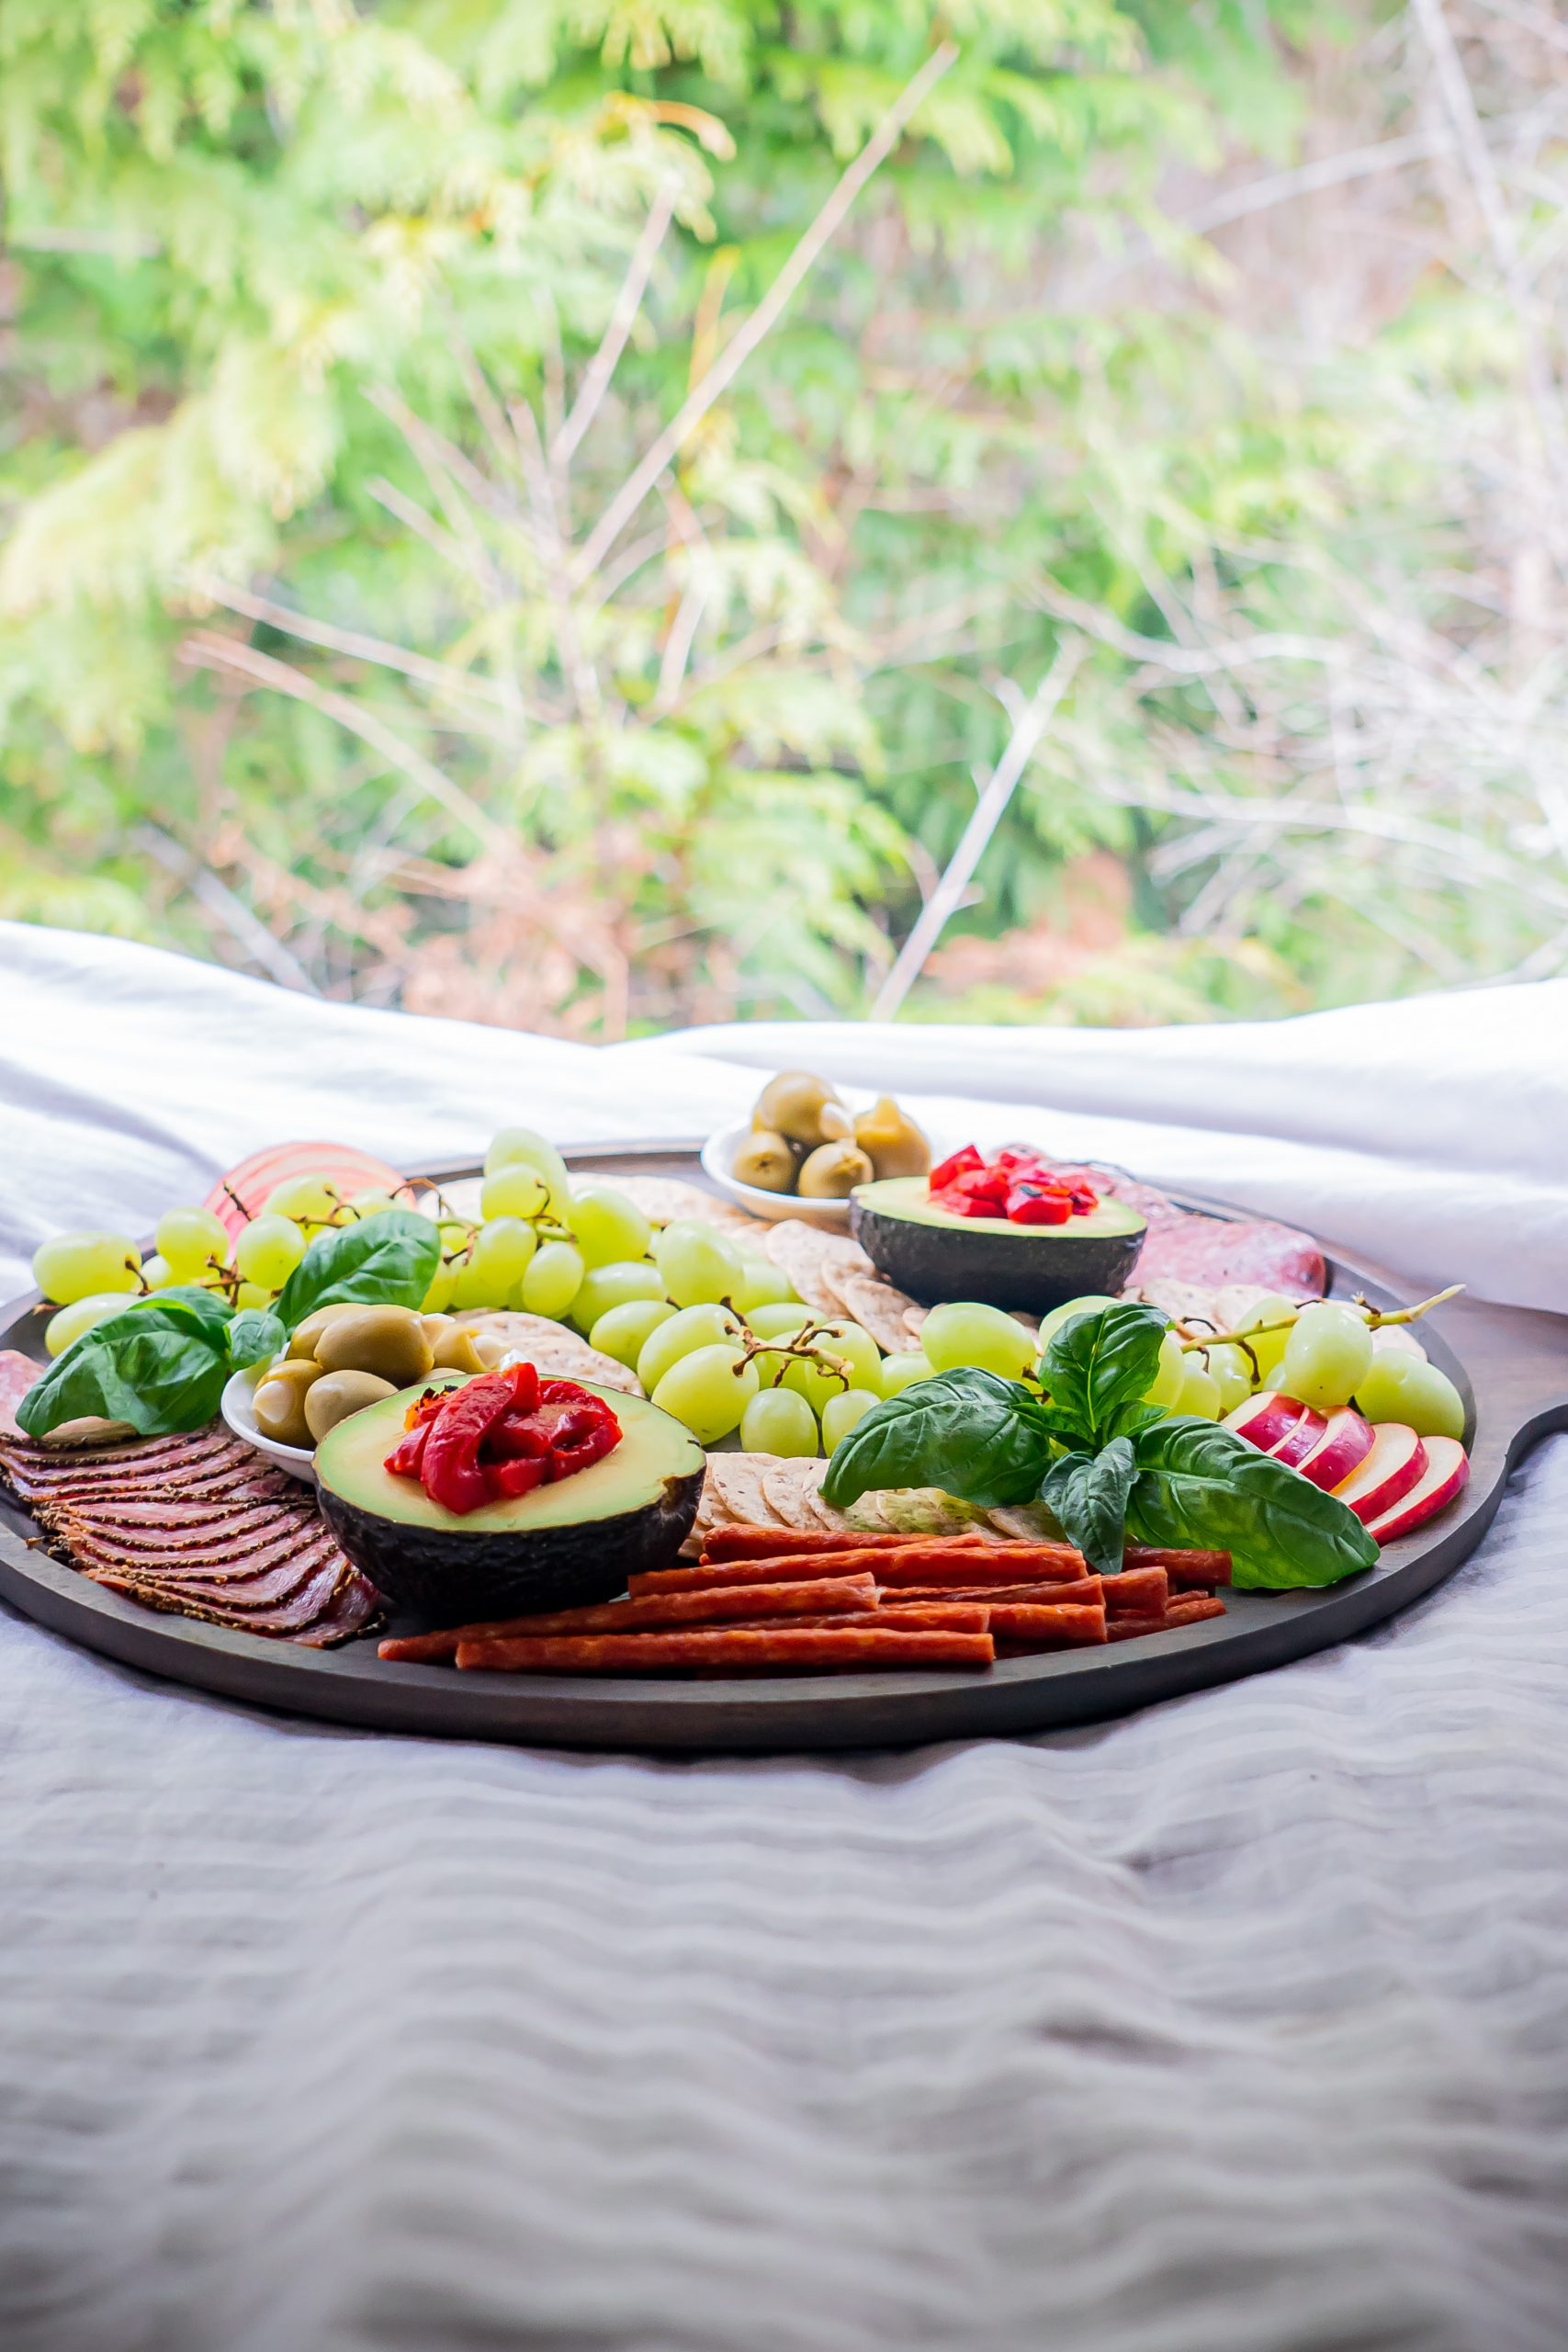 A gluten and dairy free charcuterie board set on a bed with a view of foliage outside.